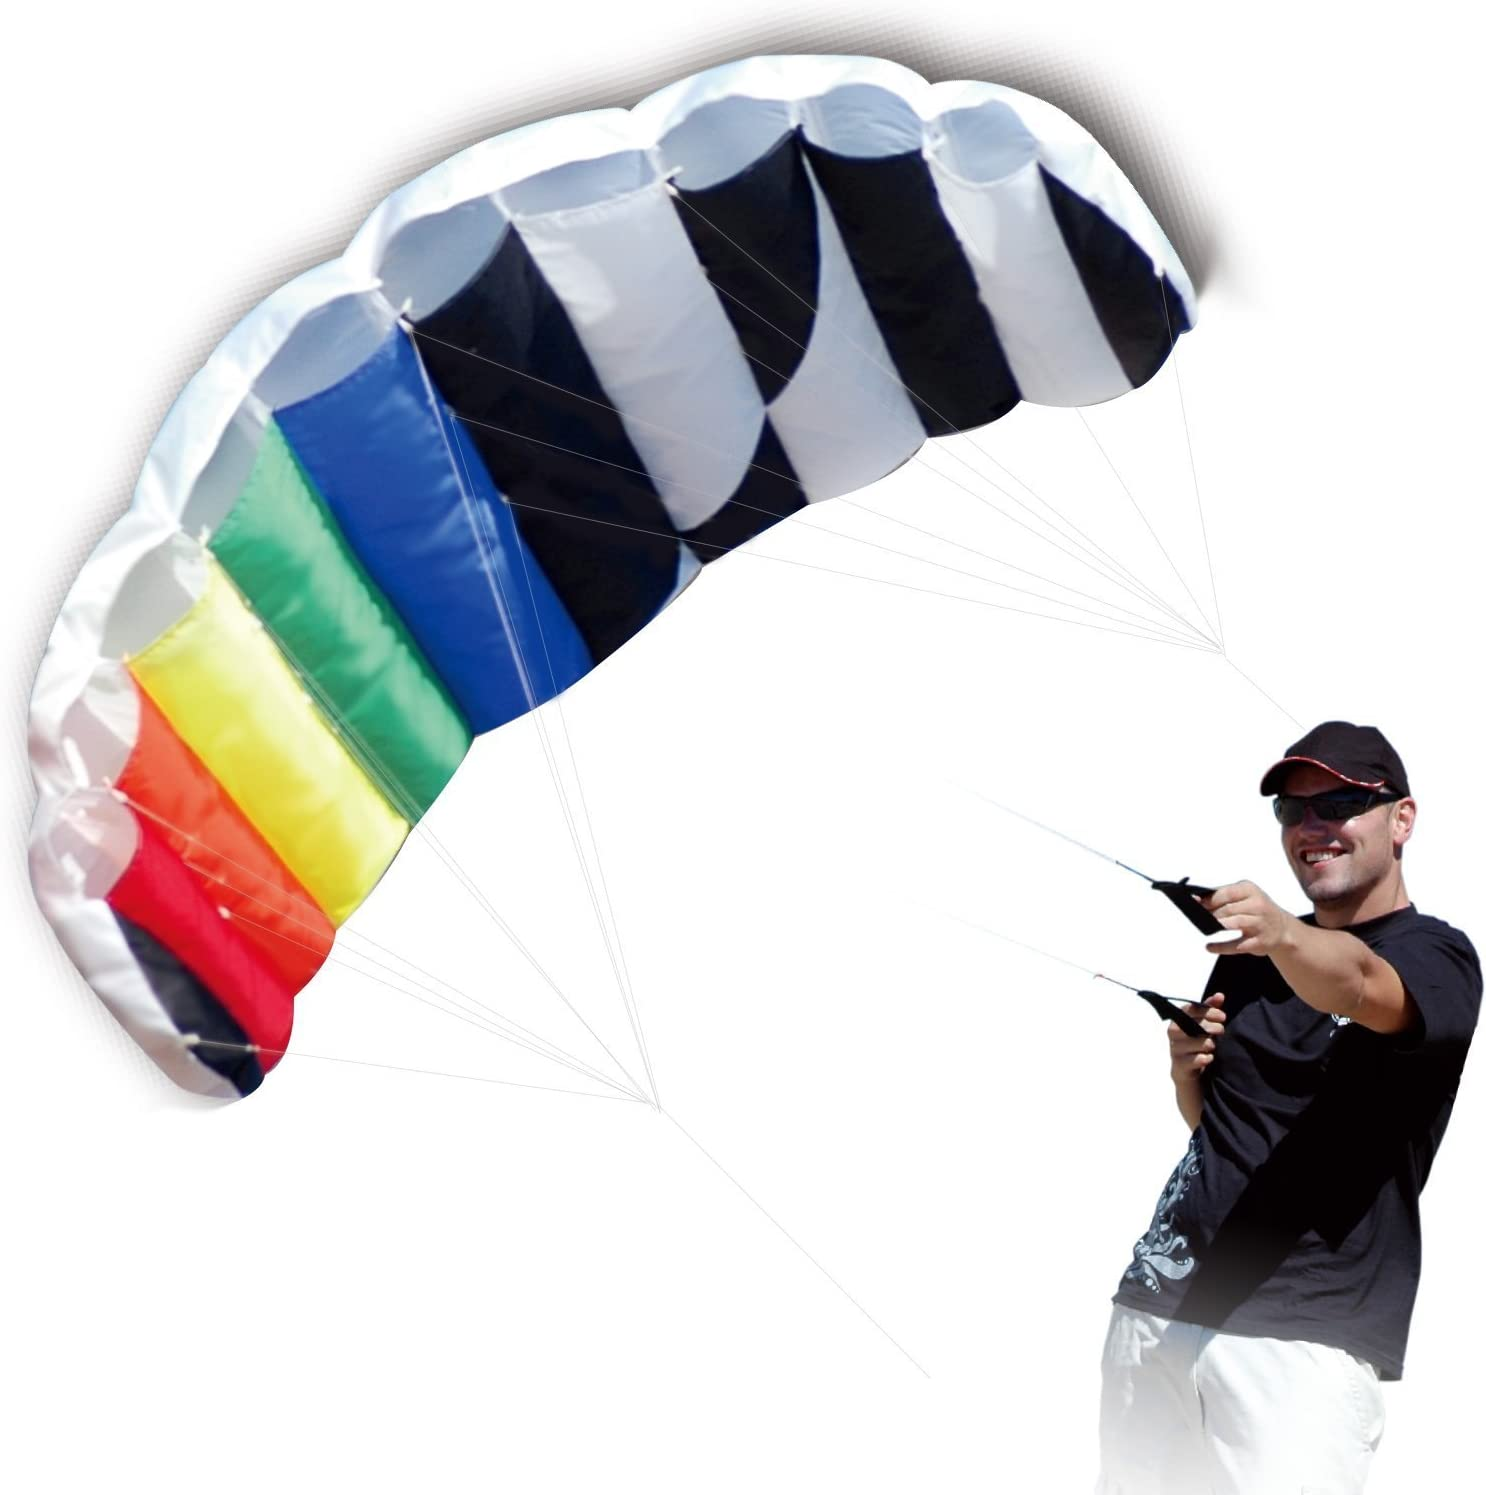 HENGDA KITE 1.4 Excellent M Intro Foil Rainbow Soft Spo Stunt Design Kites Inventory cleanup selling sale